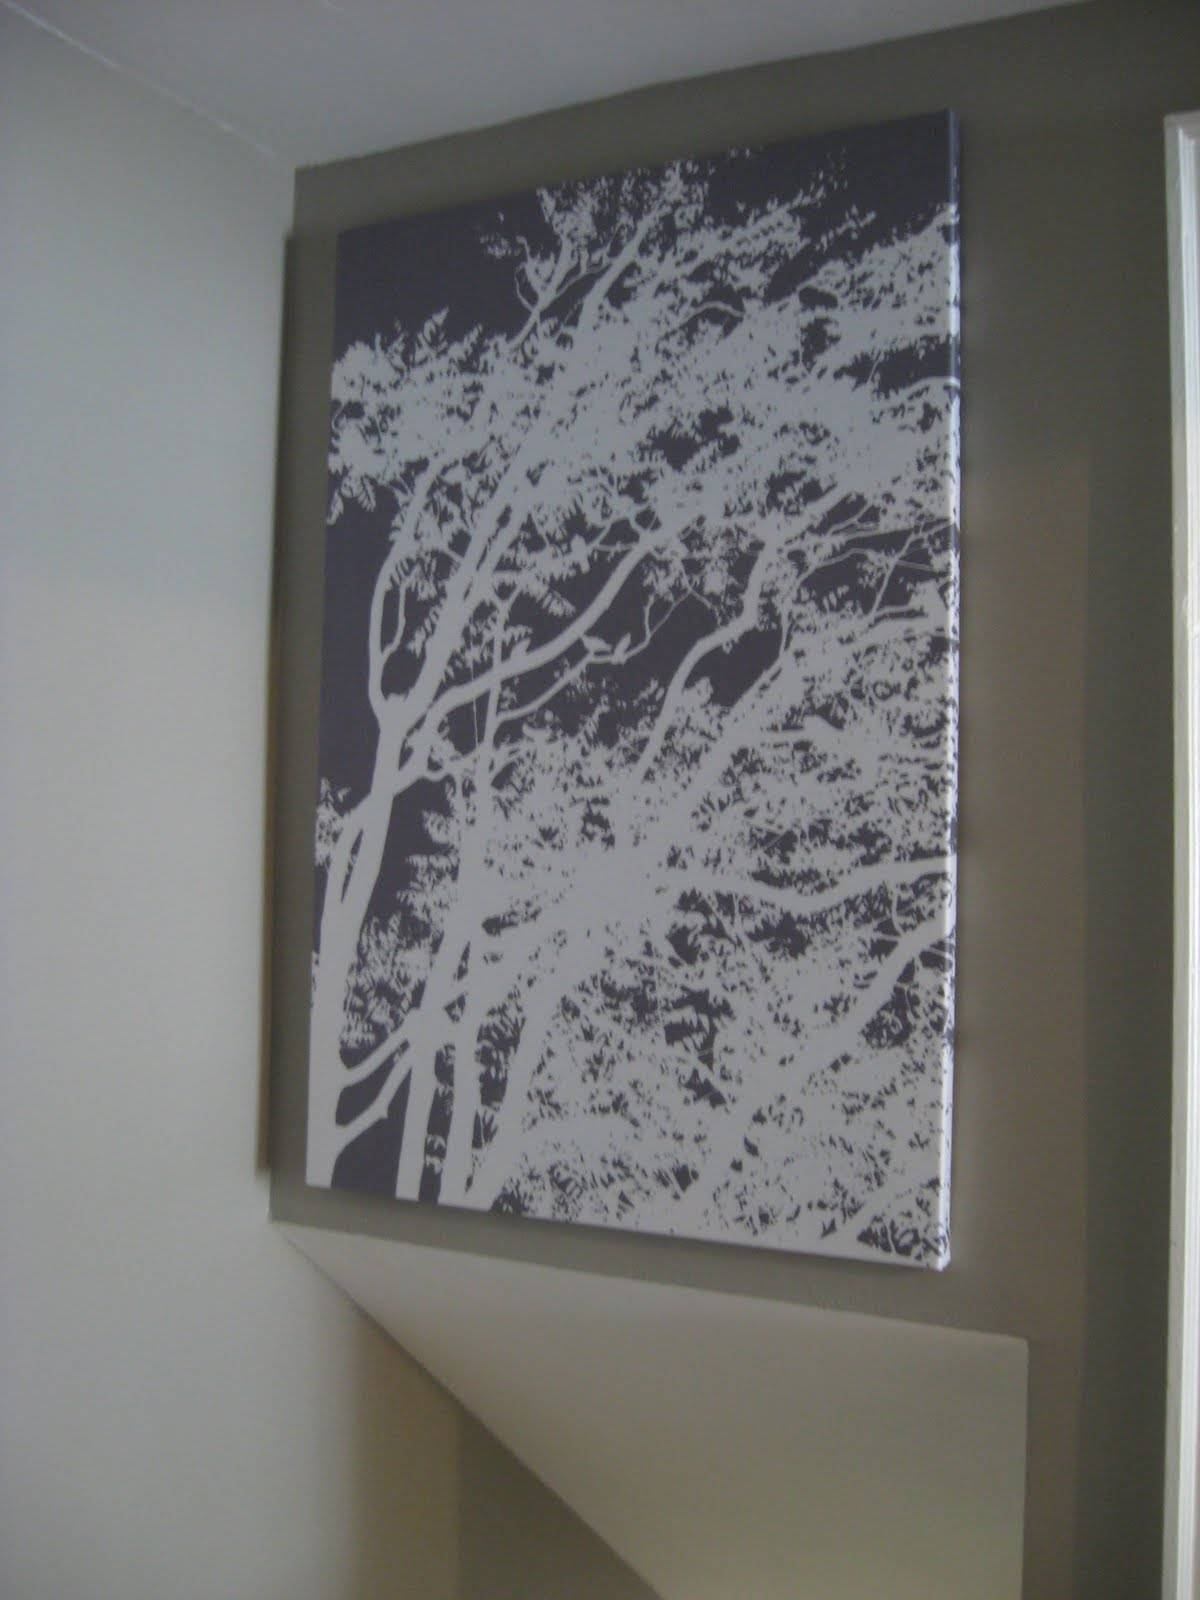 Stretched Fabric Wall Art   Home Design Ideas In Most Popular Fabric Wall Art (View 18 of 20)